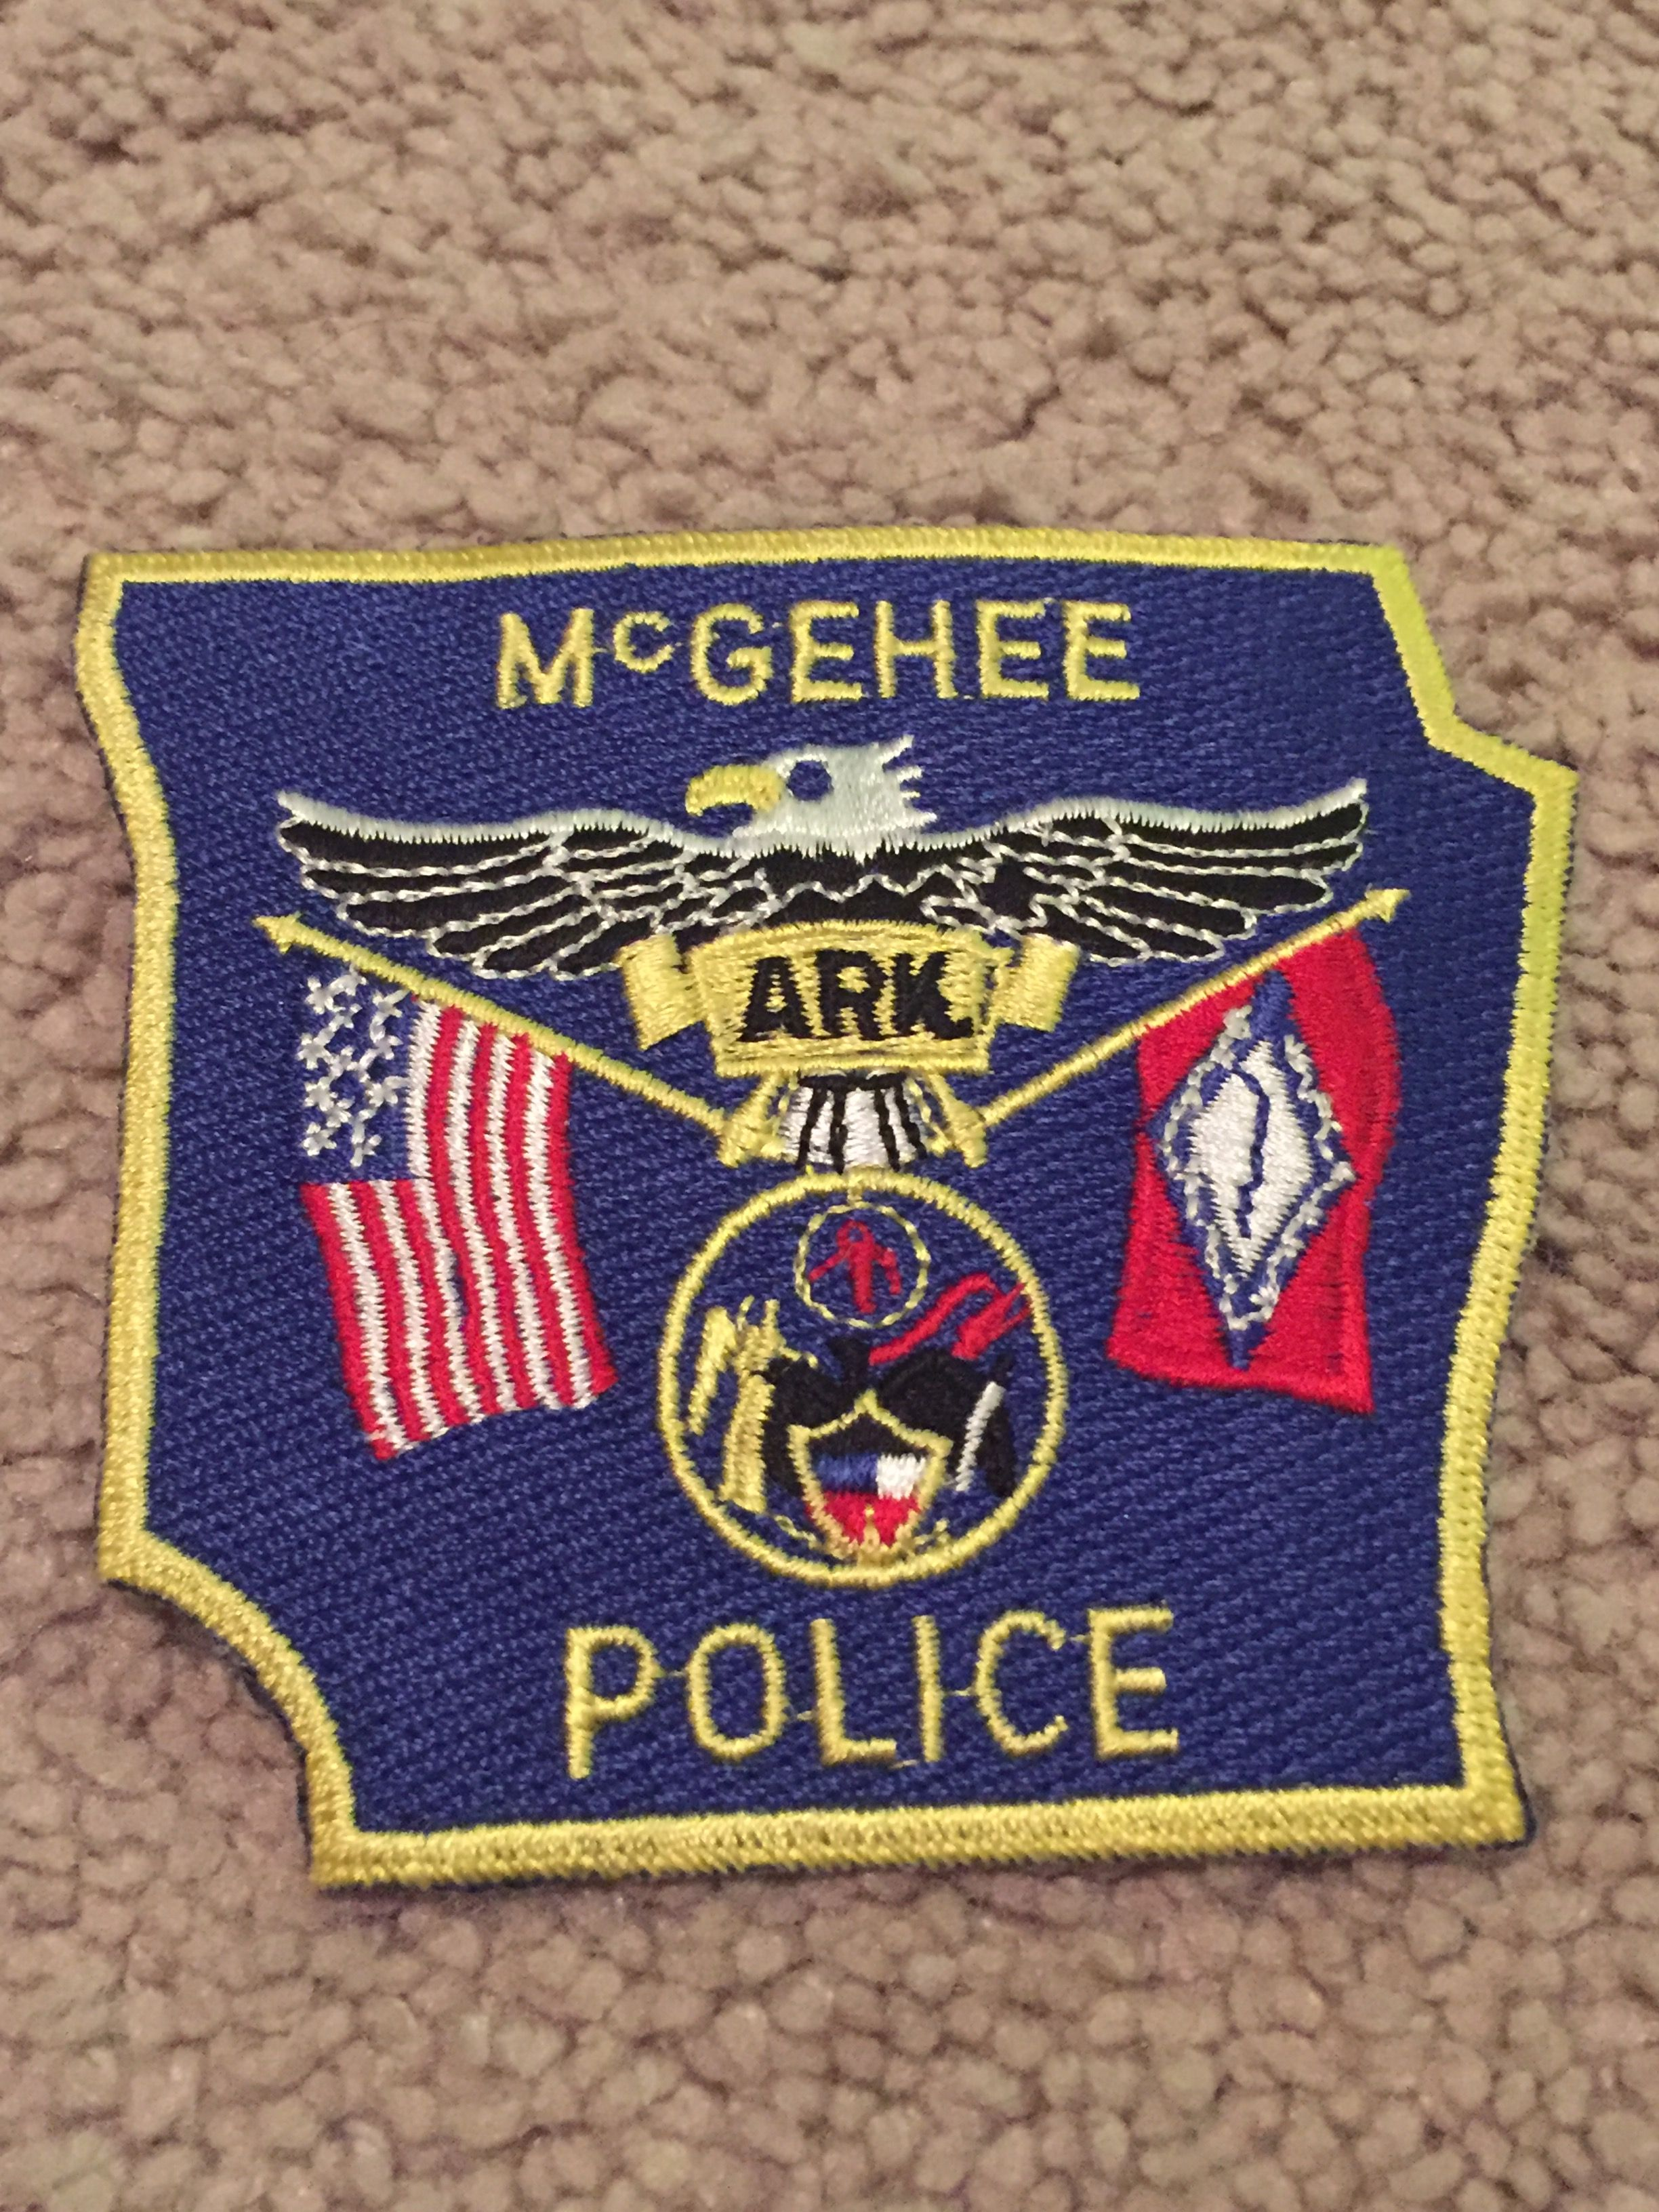 McGehee PD Police patches, Mississippi, Louisiana